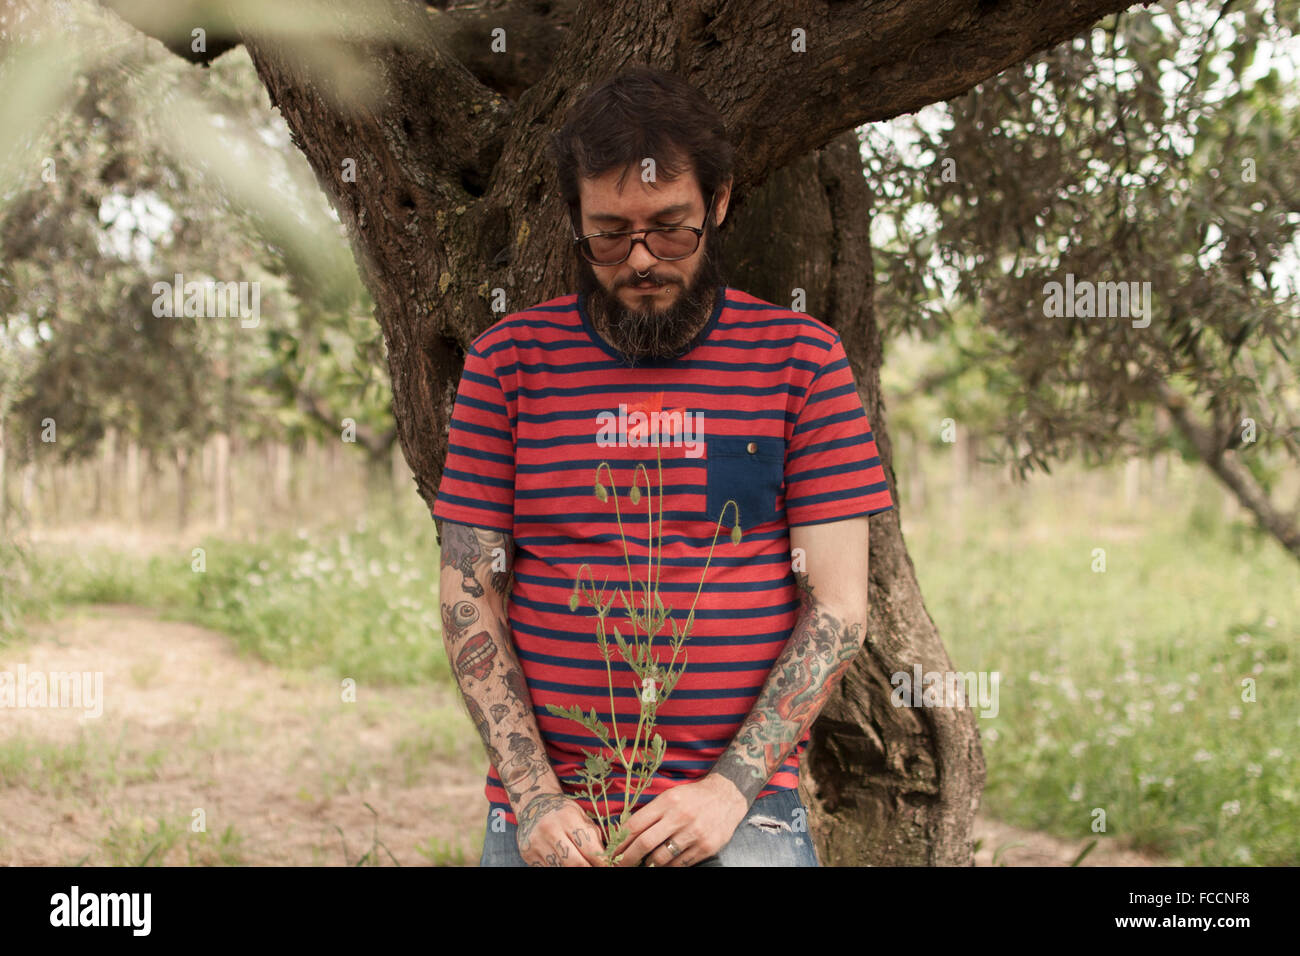 Man Holding Flower While Standing On Field - Stock Image